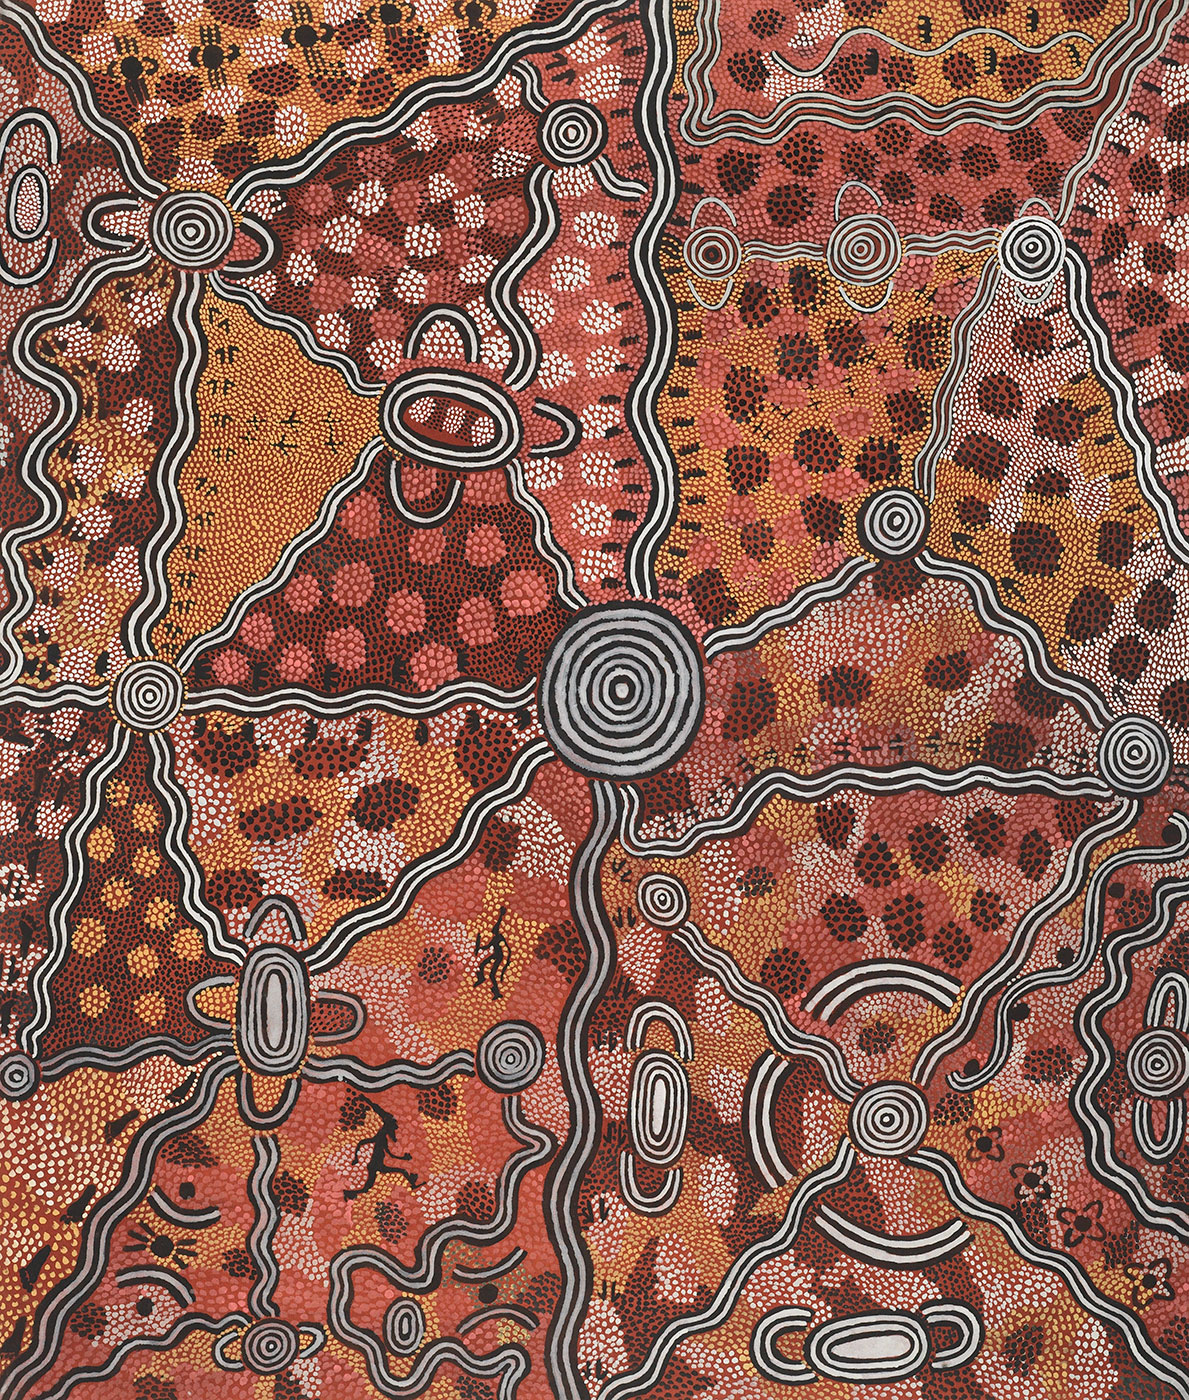 Life at Yuwa Dreaming 1974 by Billy Stockman Tjapaltjarri and Tim Leura Tjapaltjarri. - click to view larger image